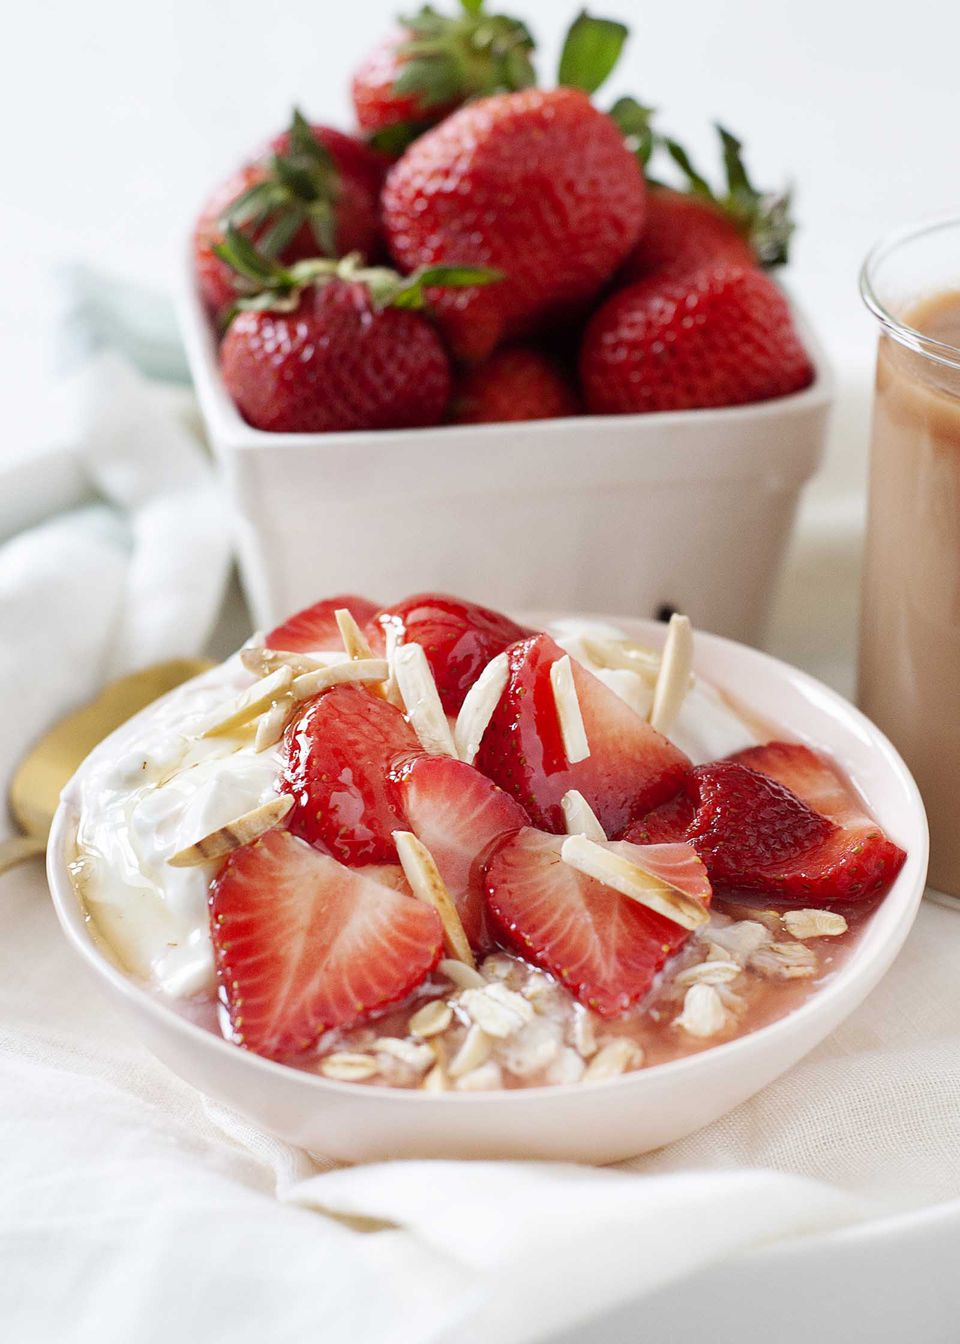 Side view of a tray filled with a creamy coffee, the best overnight oats and a pint of strawberries.